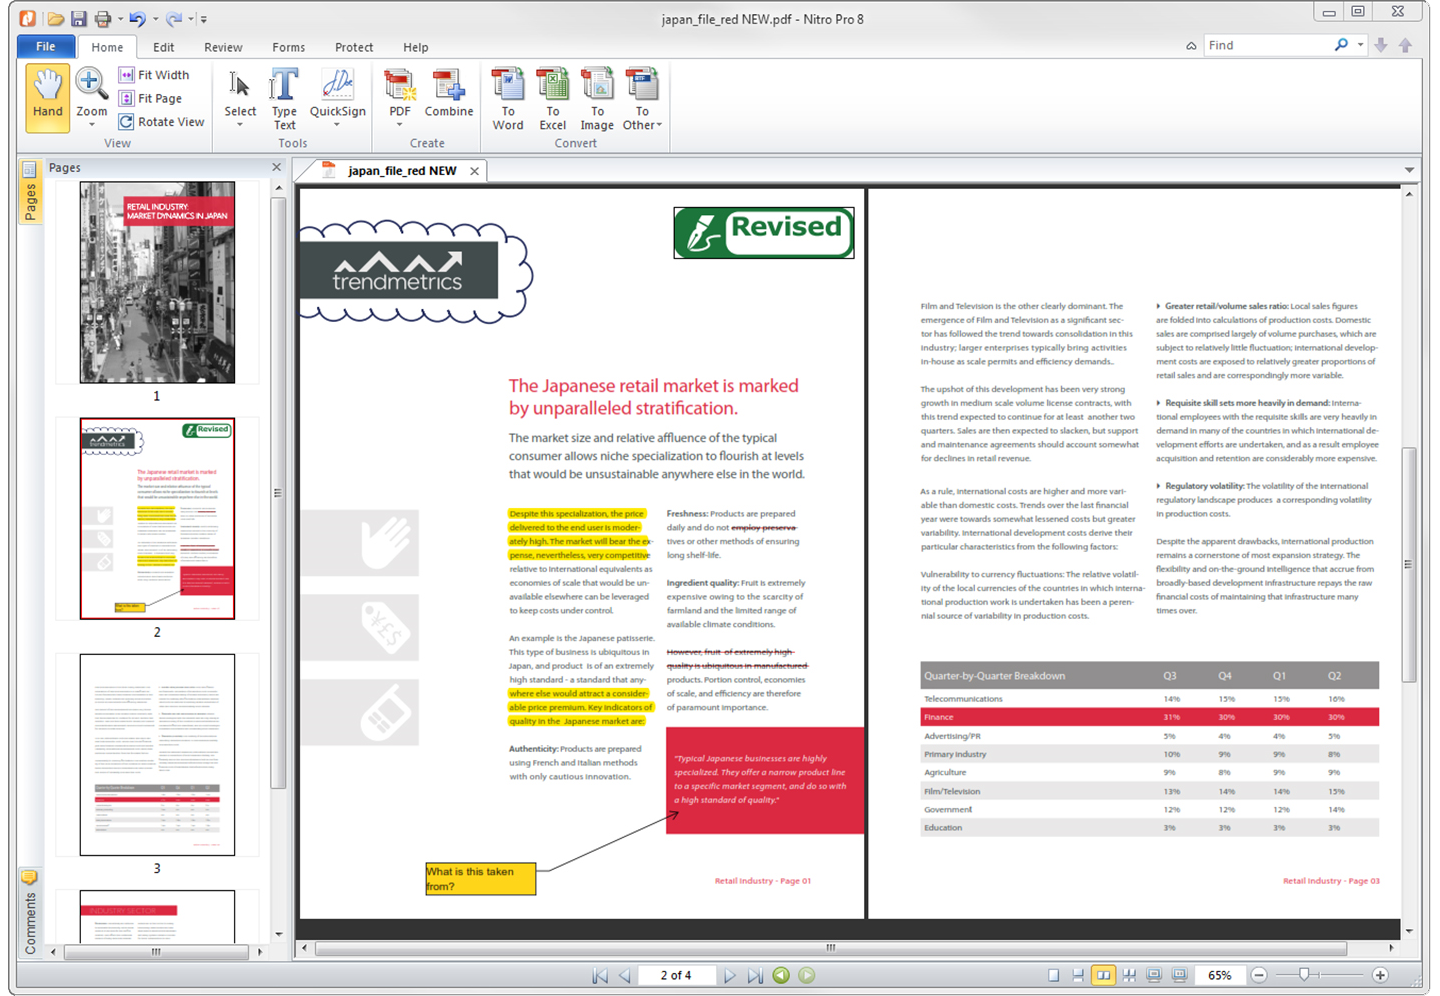 Nitro Pro 8 - PDF Utilities Software Download for PC